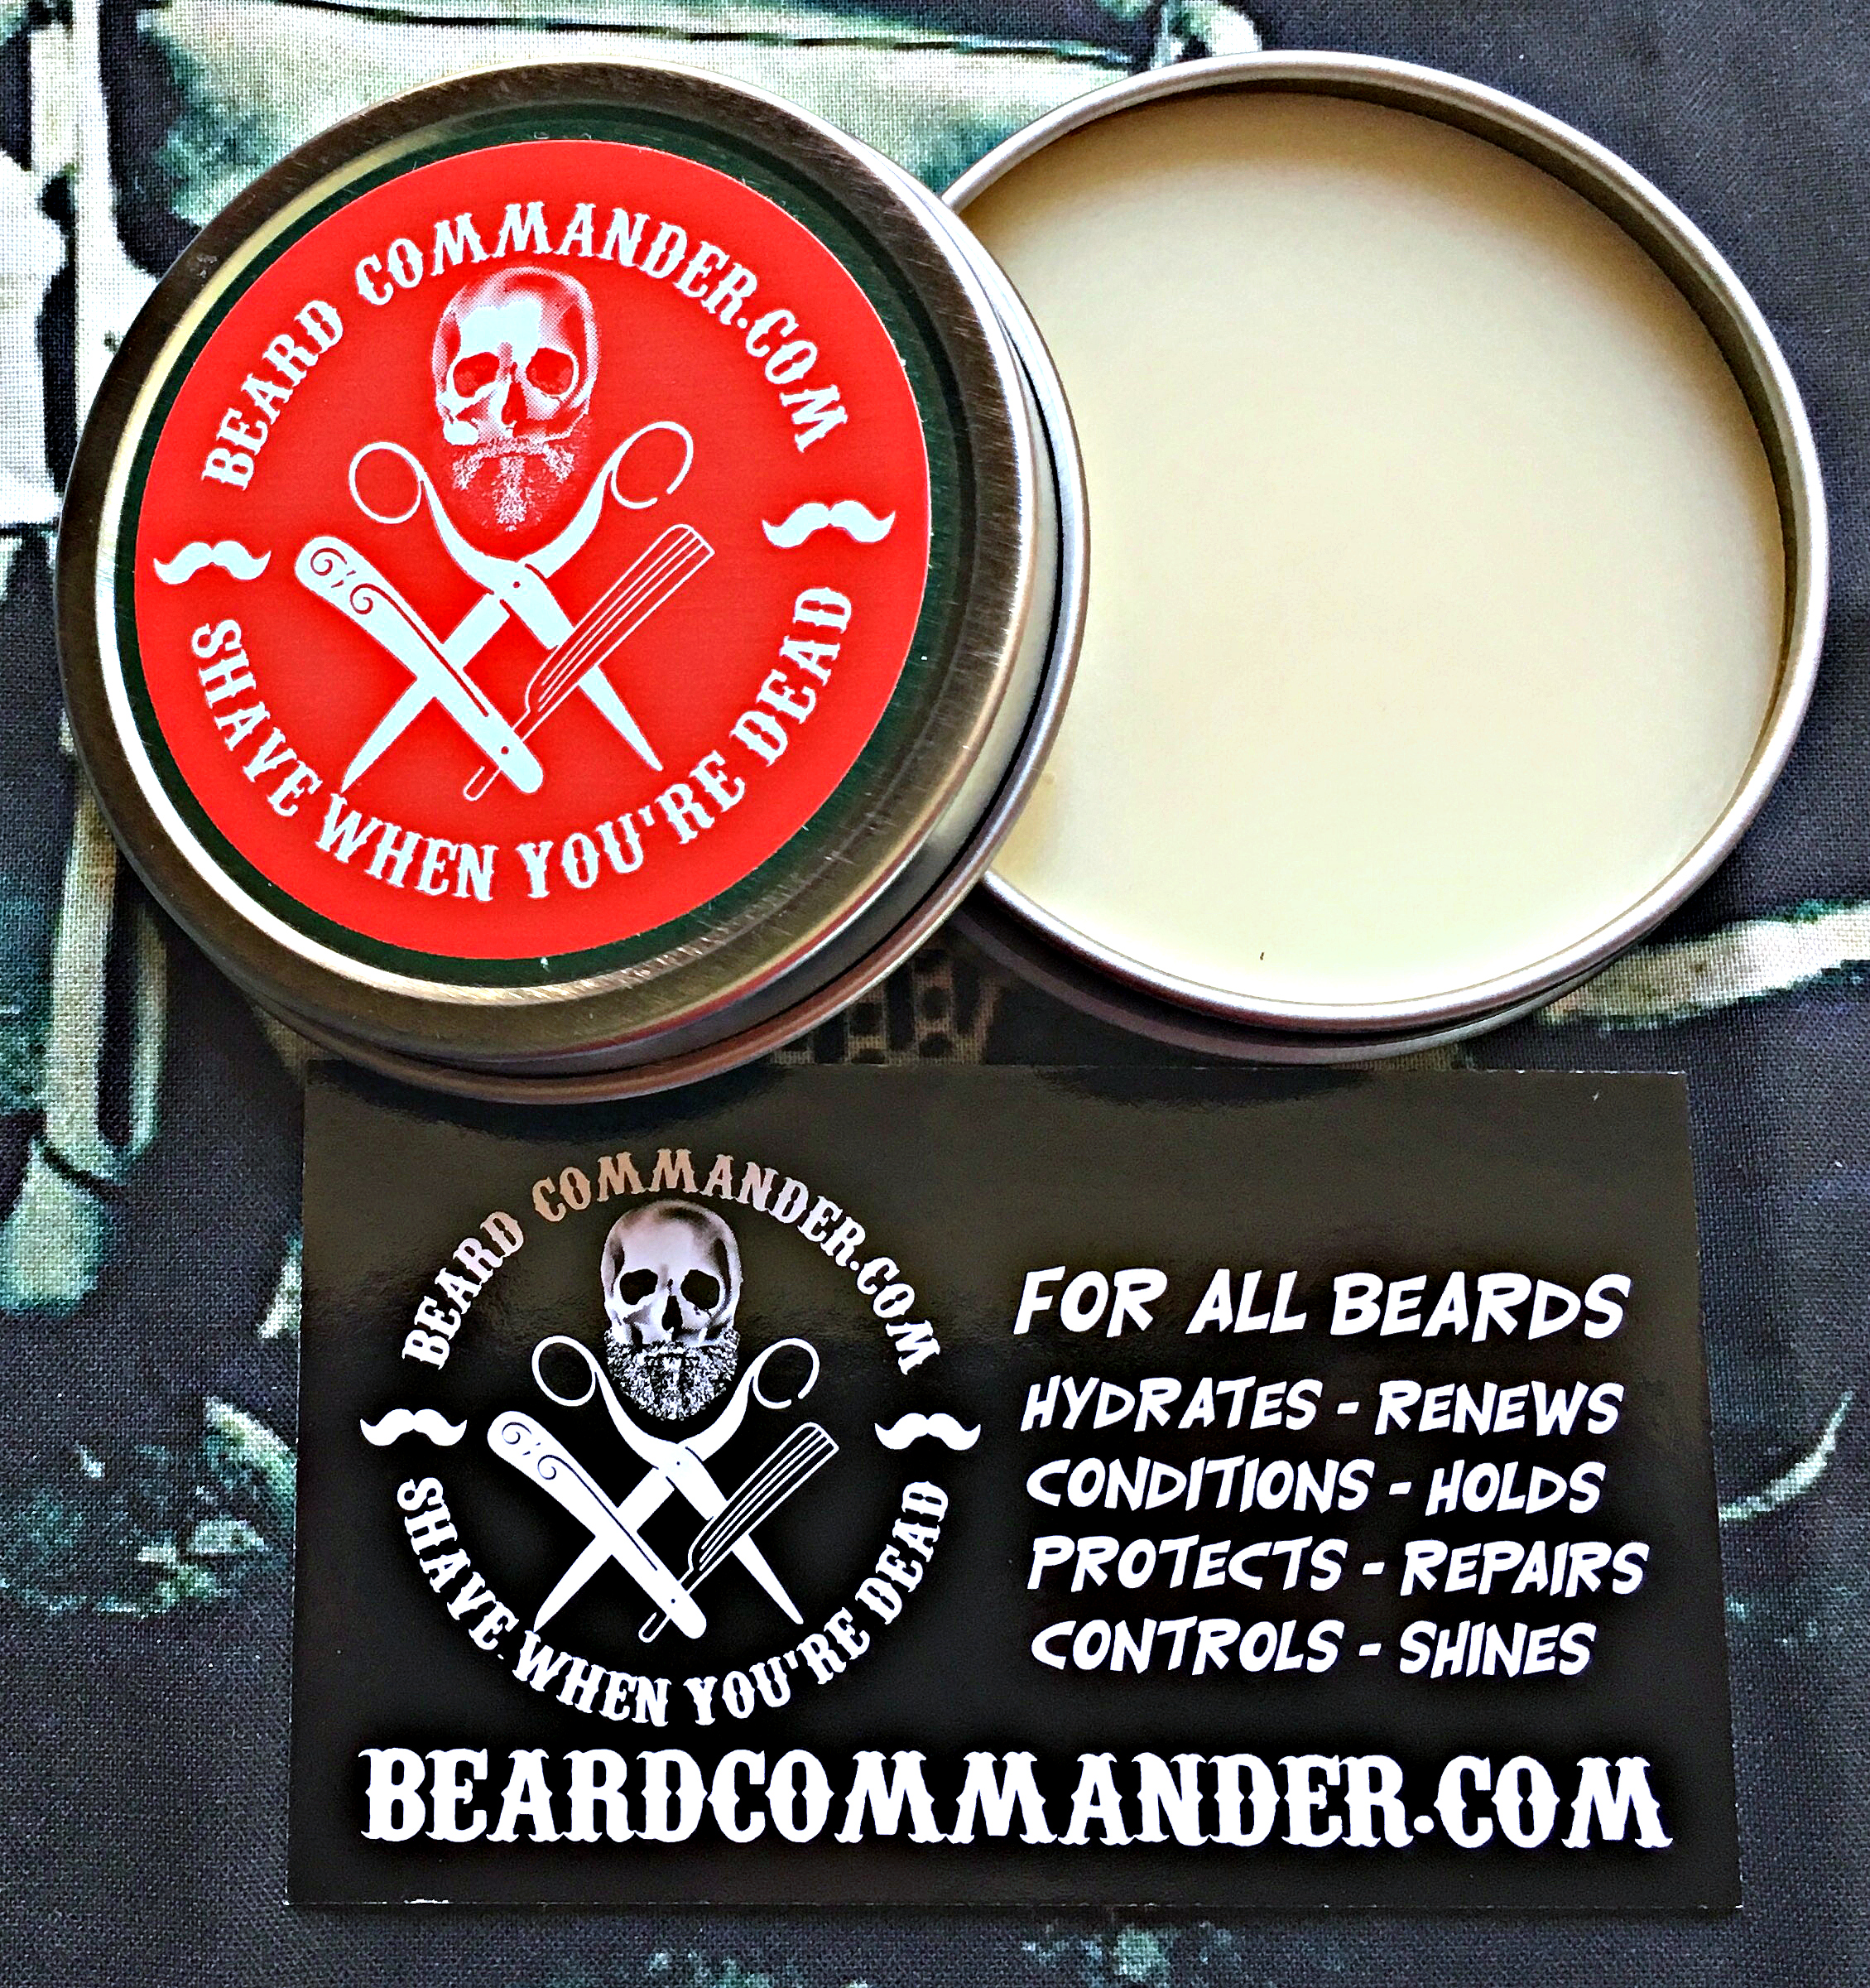 PM_eucalyptus_mint_wonder_balm_beard_commander.jpg